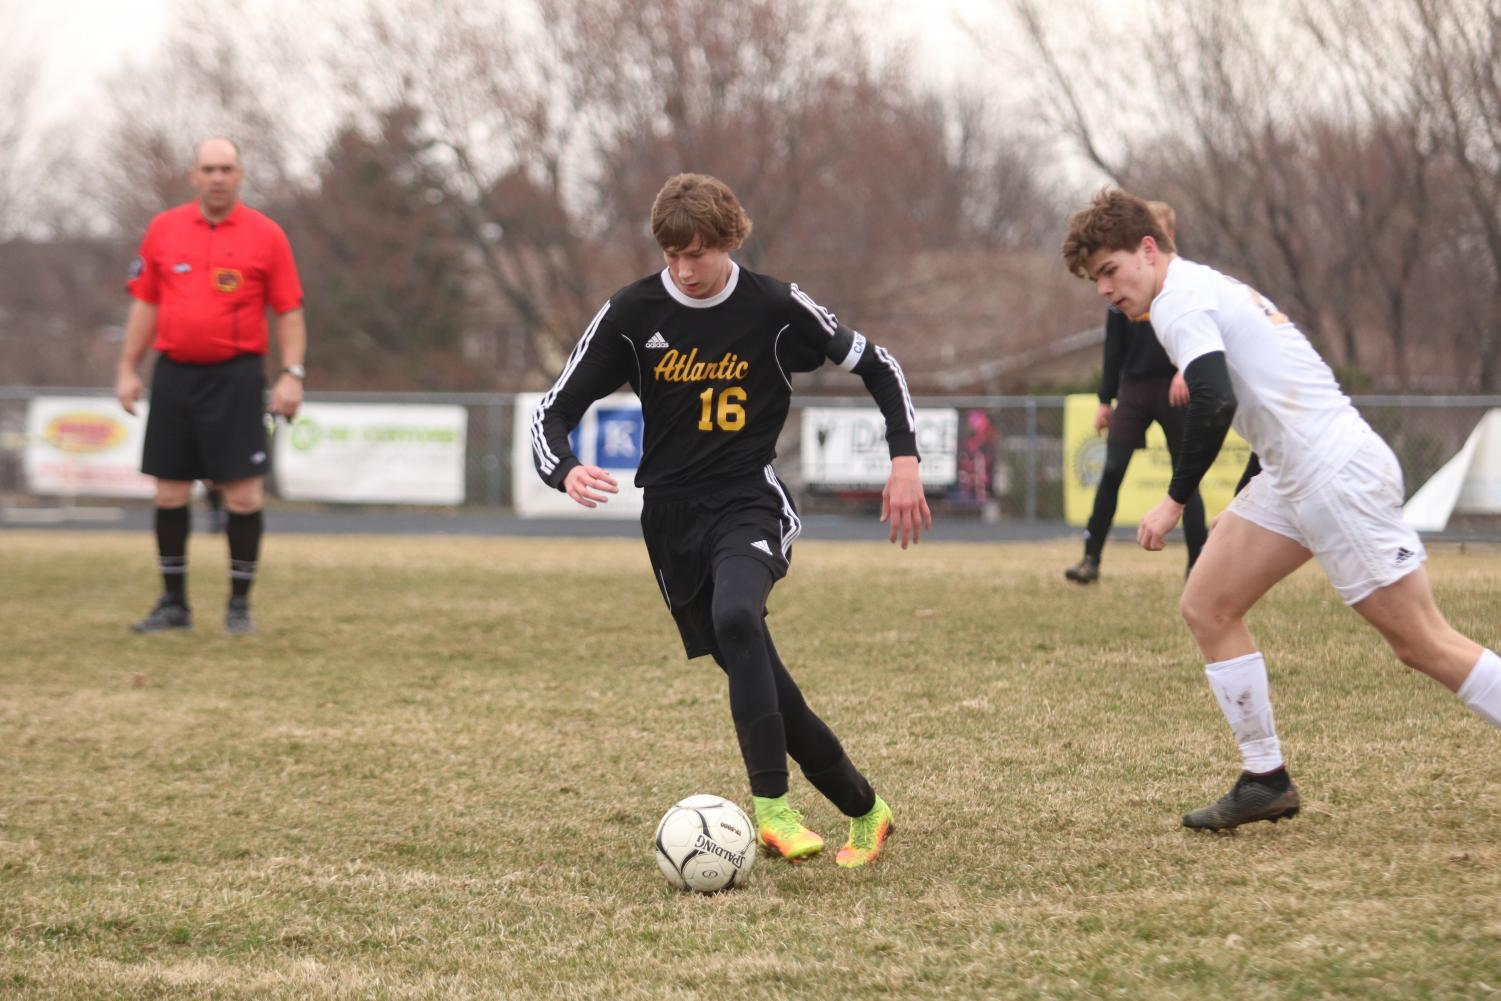 ON THE ATTACK - Senior Nathan Brockman dribbles the ball away from the Tri-Center competitor. Brockman is one of the captains for the boys' soccer team this year.